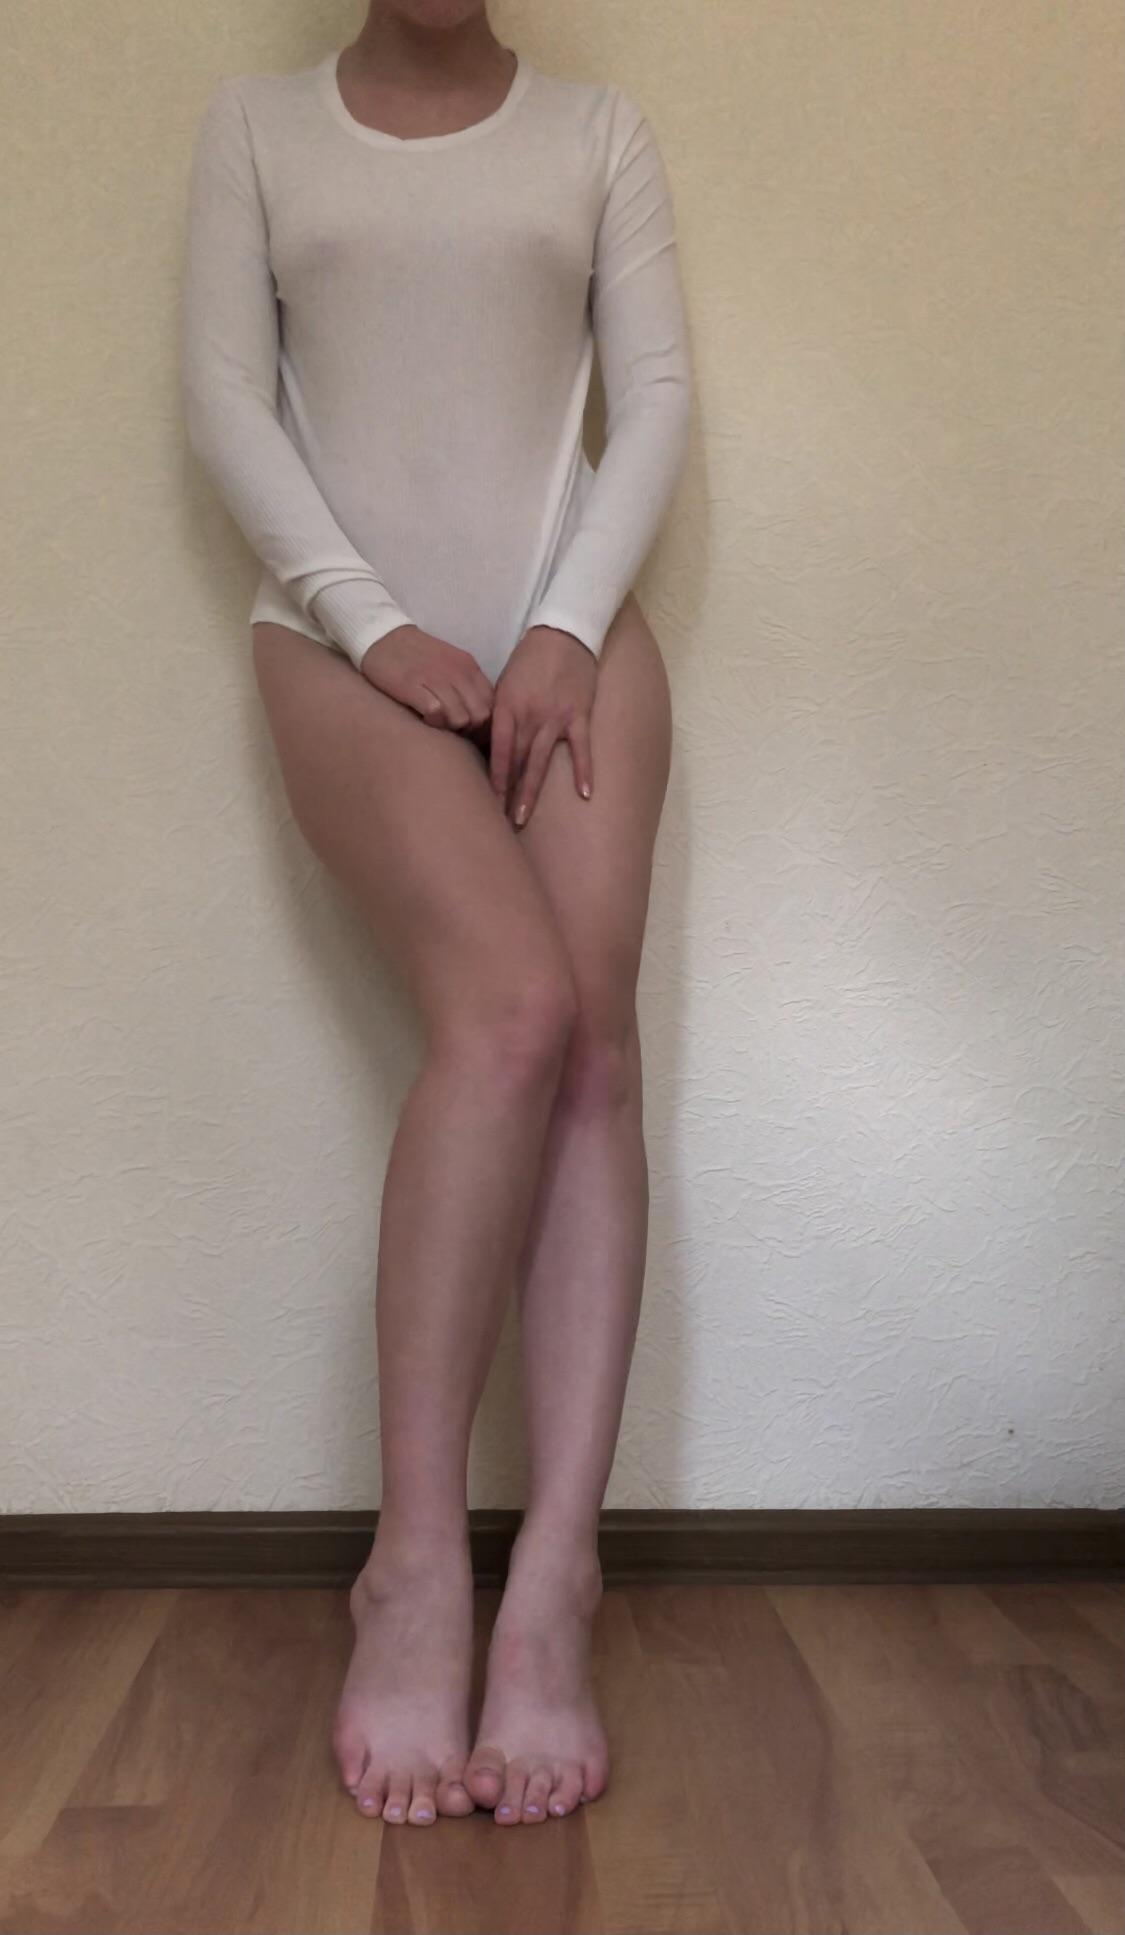 I Need You To Help With My Shyness ☺️ May I Give You A Gentle Blowjob?